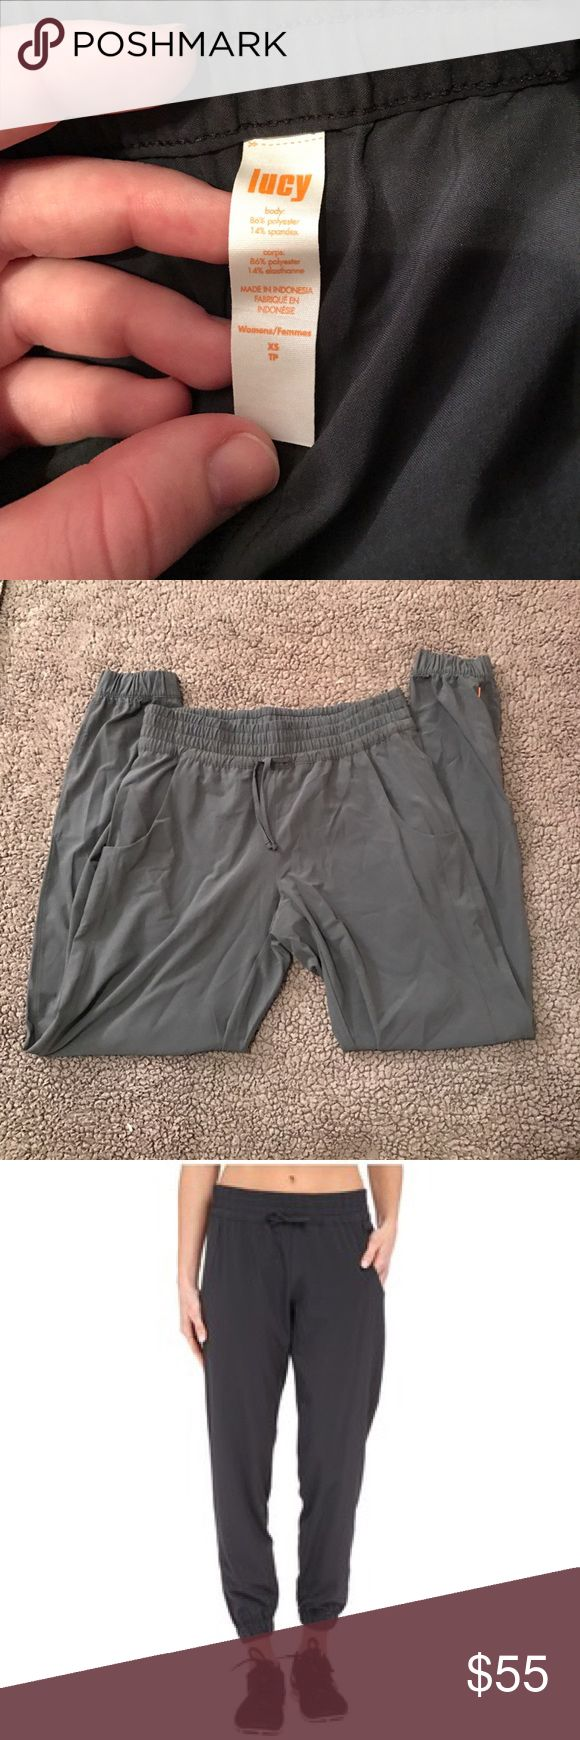 Lucy do everything cuffed pant is size small Lucy athletic wear do everything cuffed pant in size xm Lucy Pants Ankle & Cropped